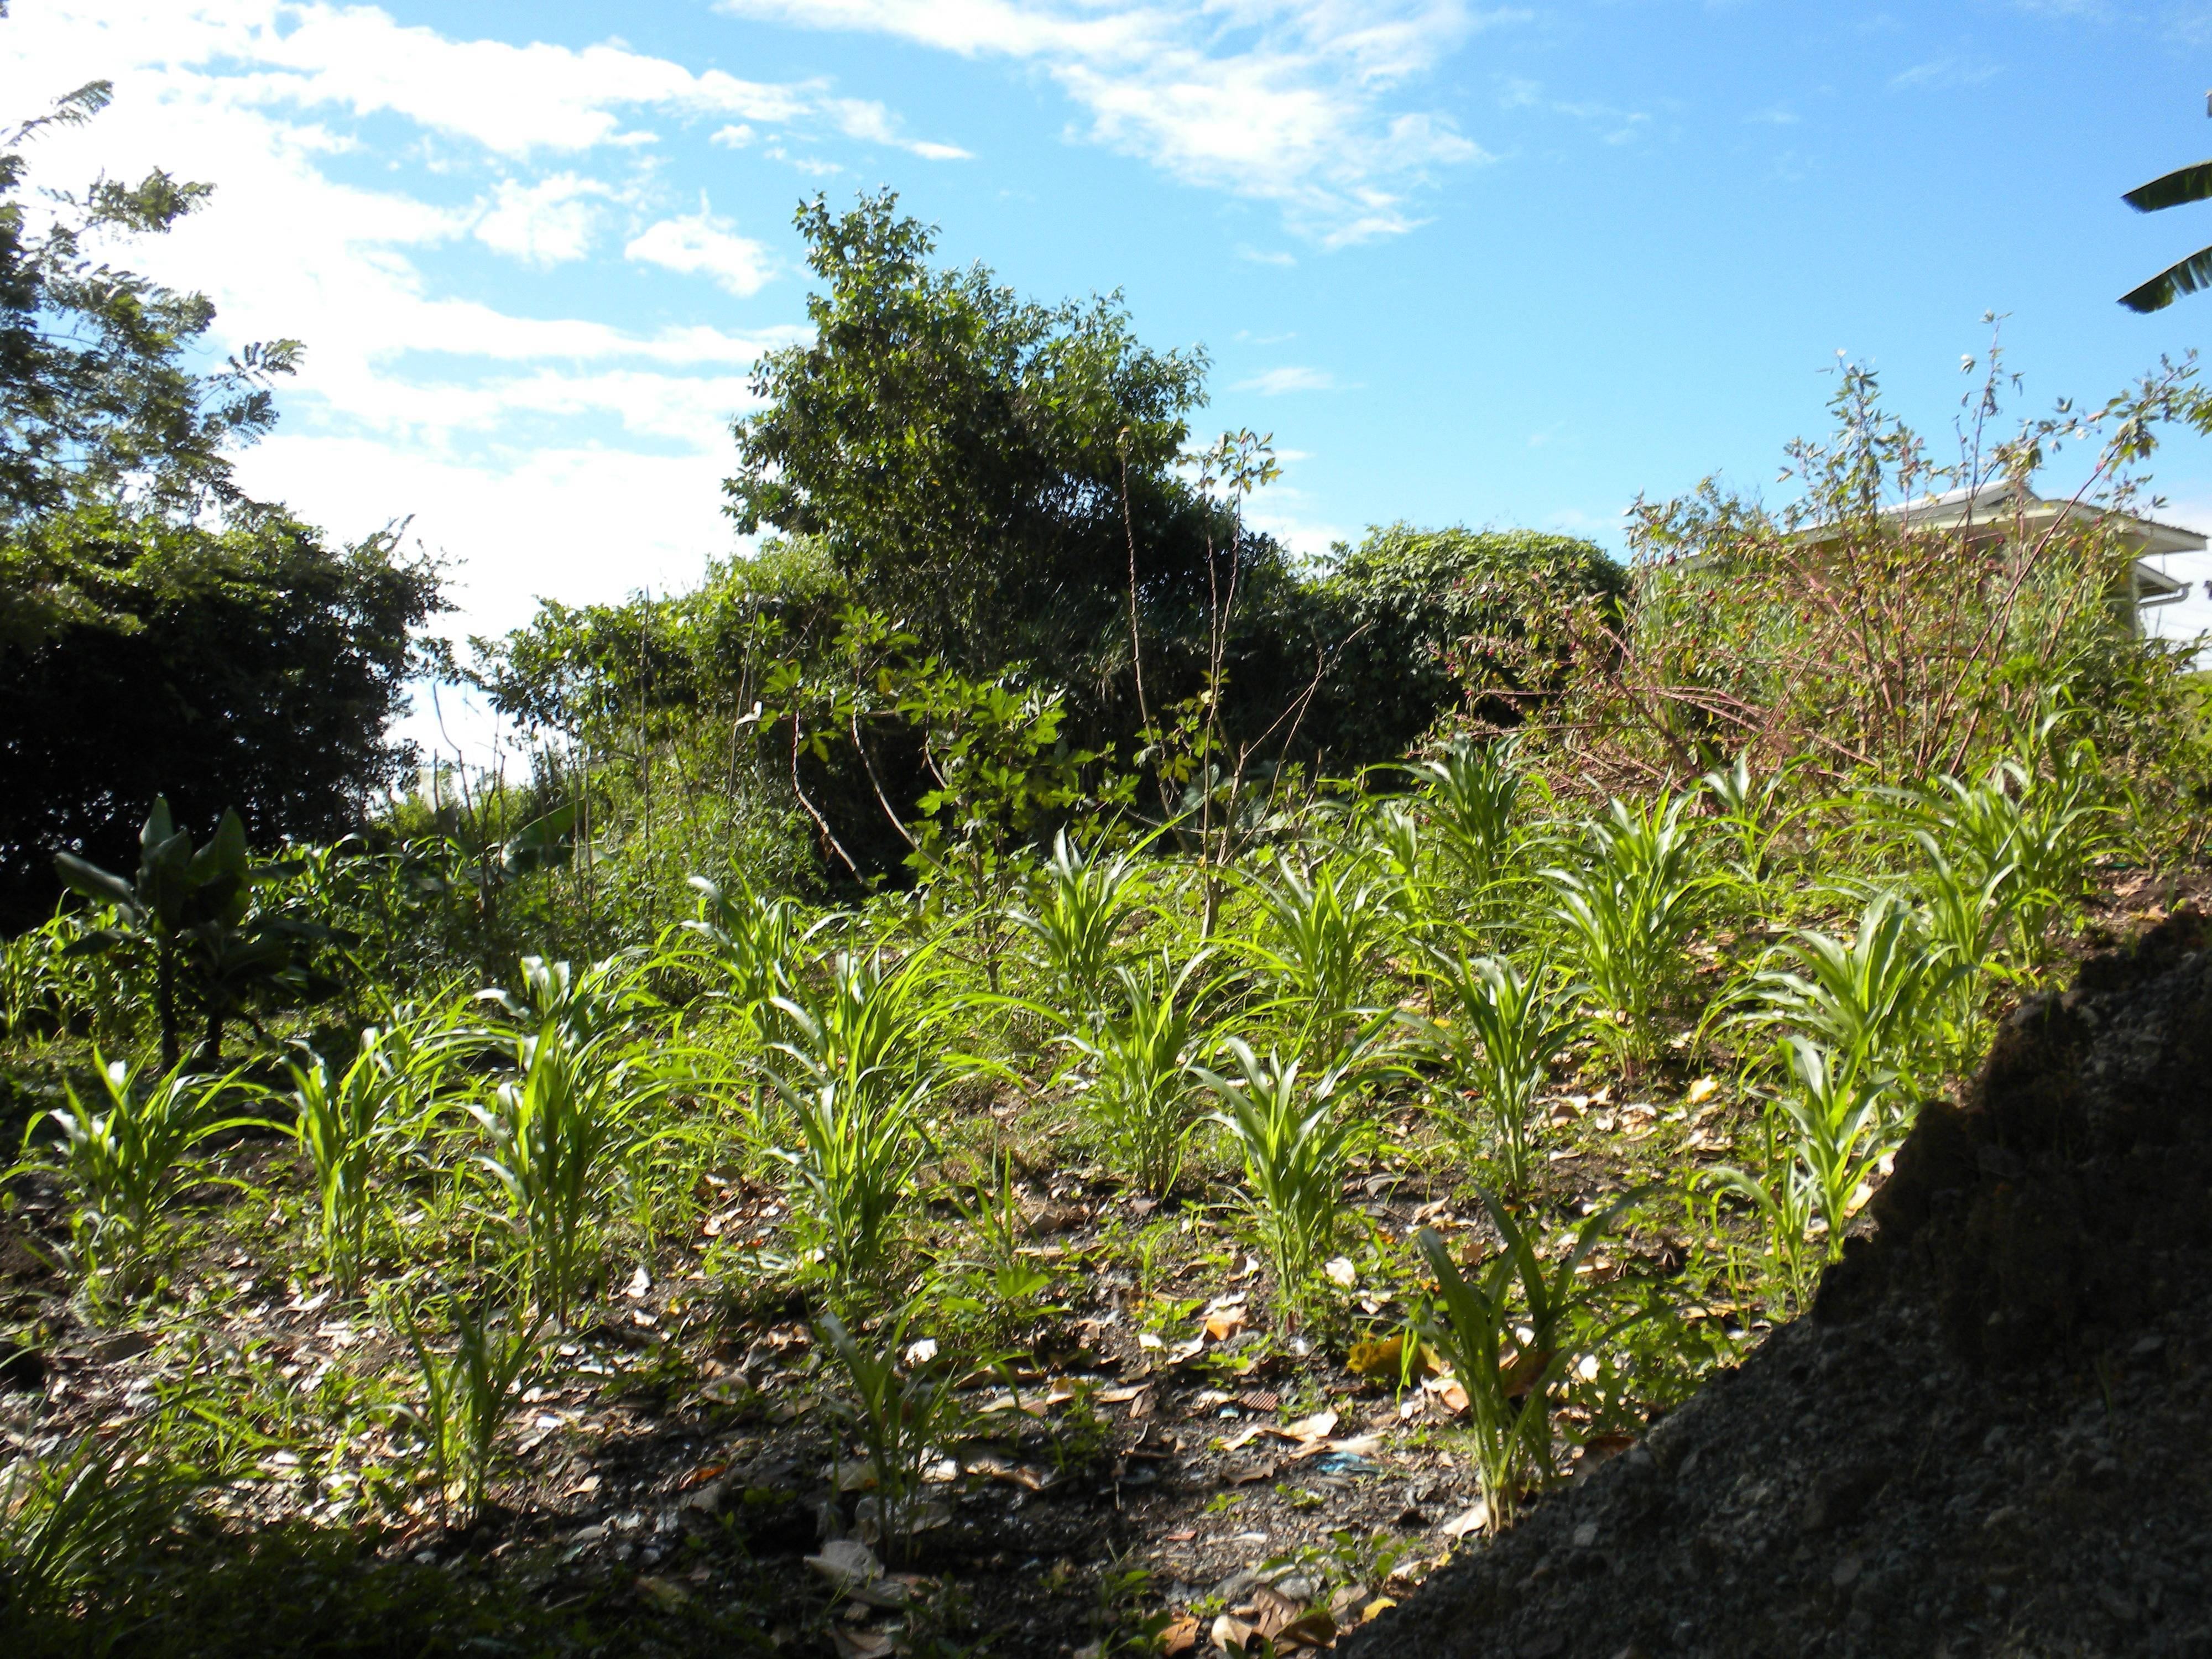 Land for Sale in Trinidadand Tobago http://www.mondinion.com/Real